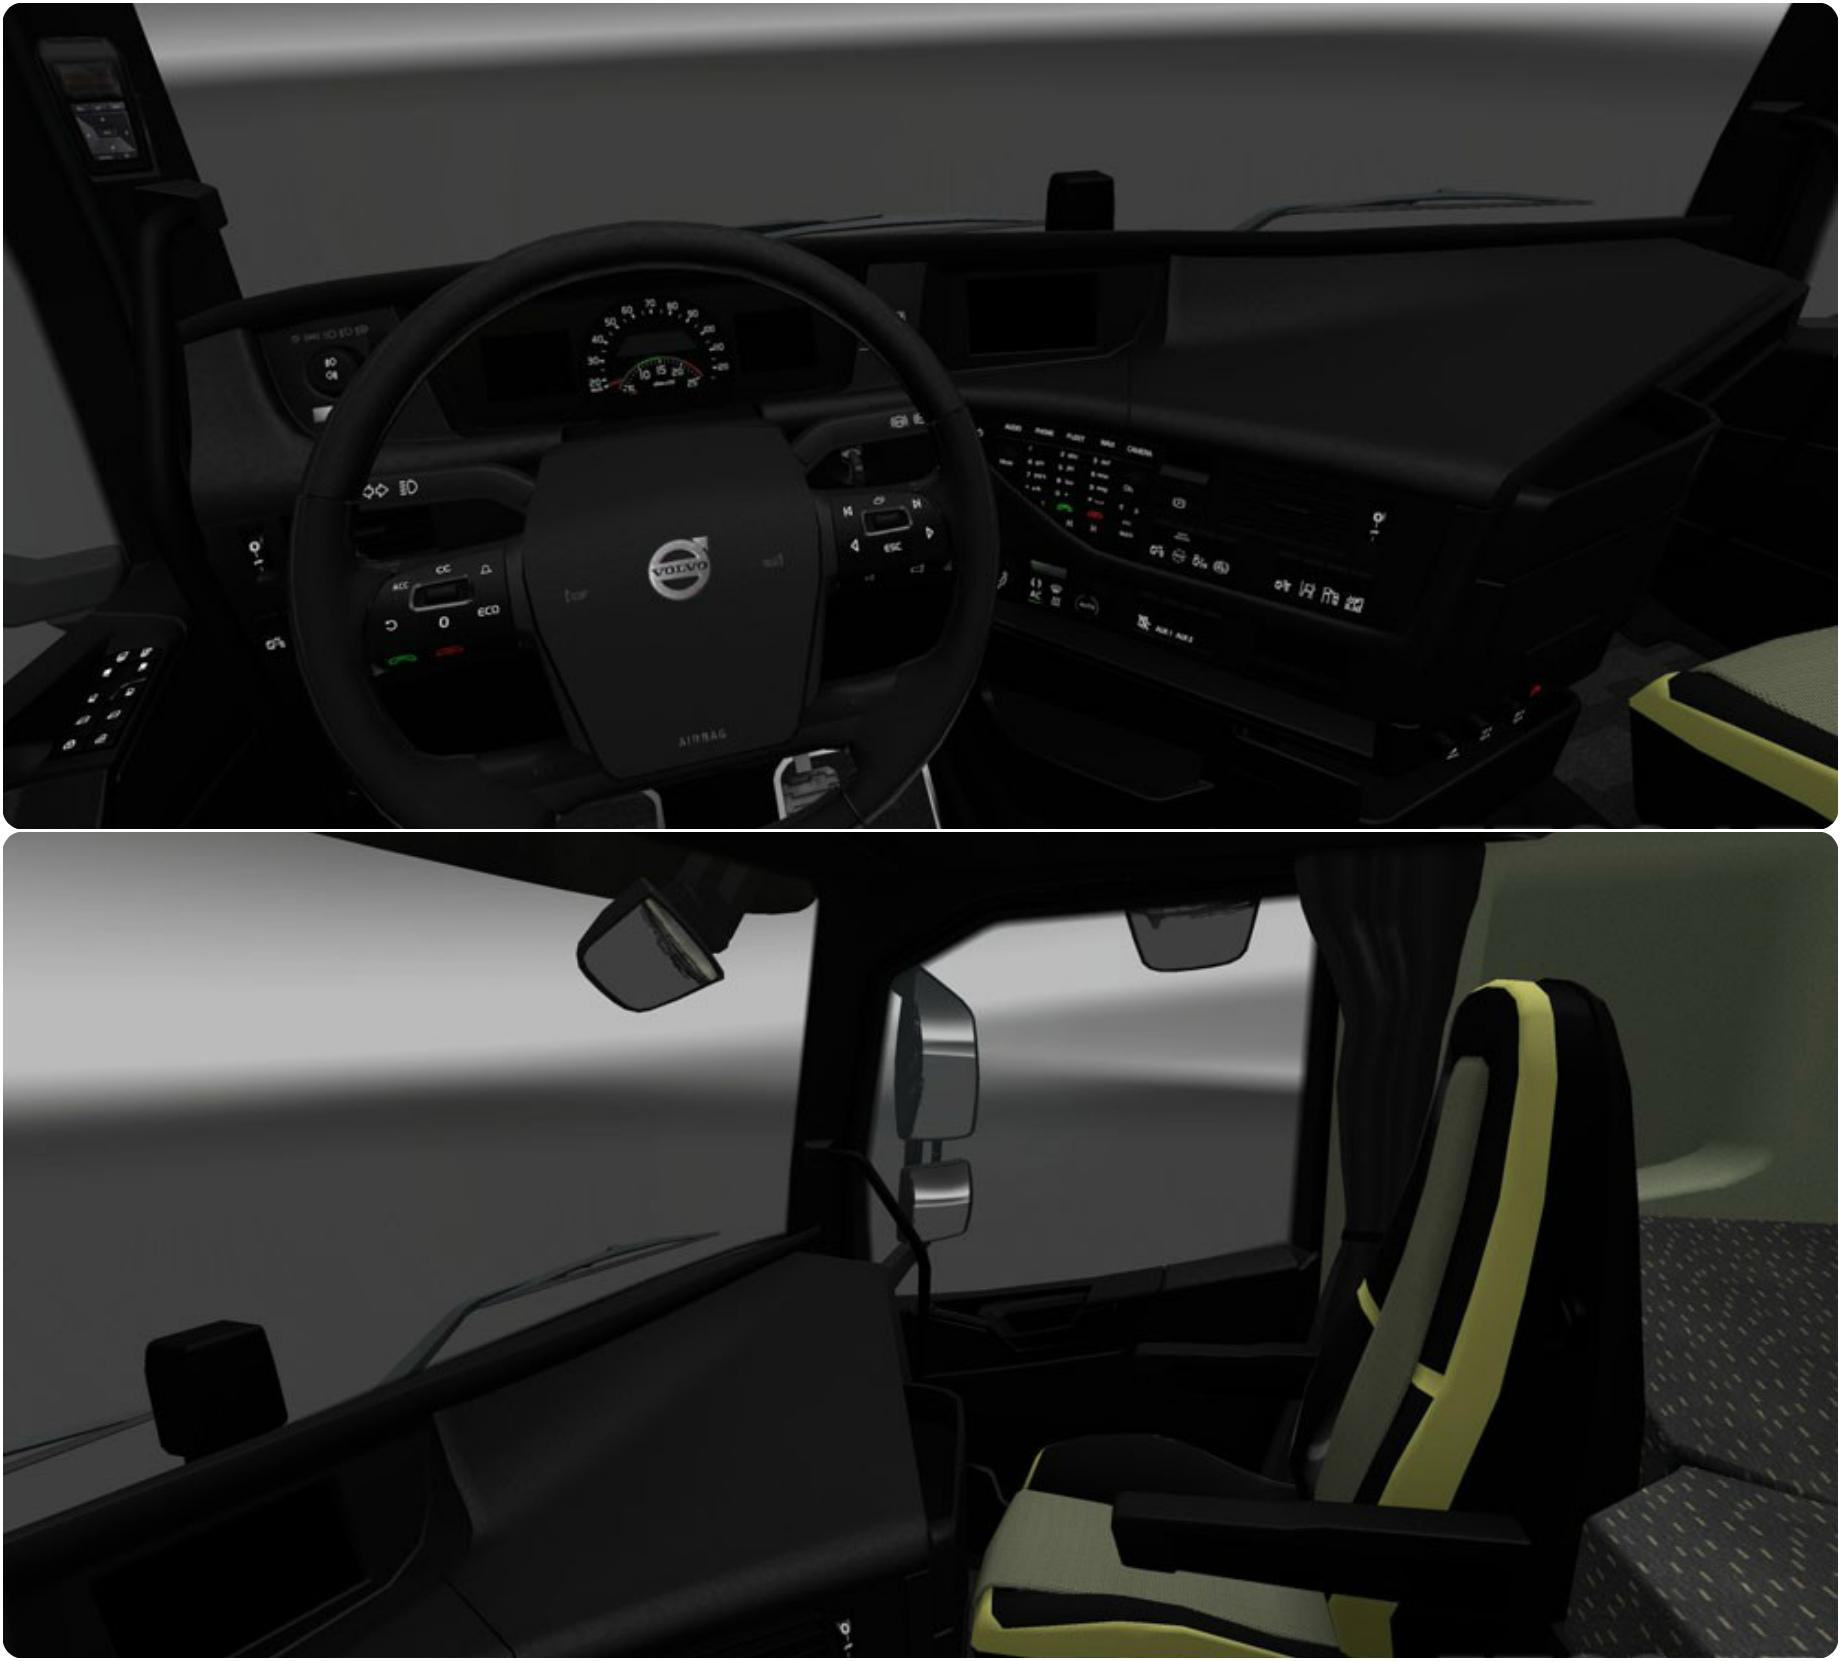 http://www.ets2world.com/wp-content/uploads/2016/06/VOLVO-FH16-2012-BLACK-INTERIOR-1.24.jpg